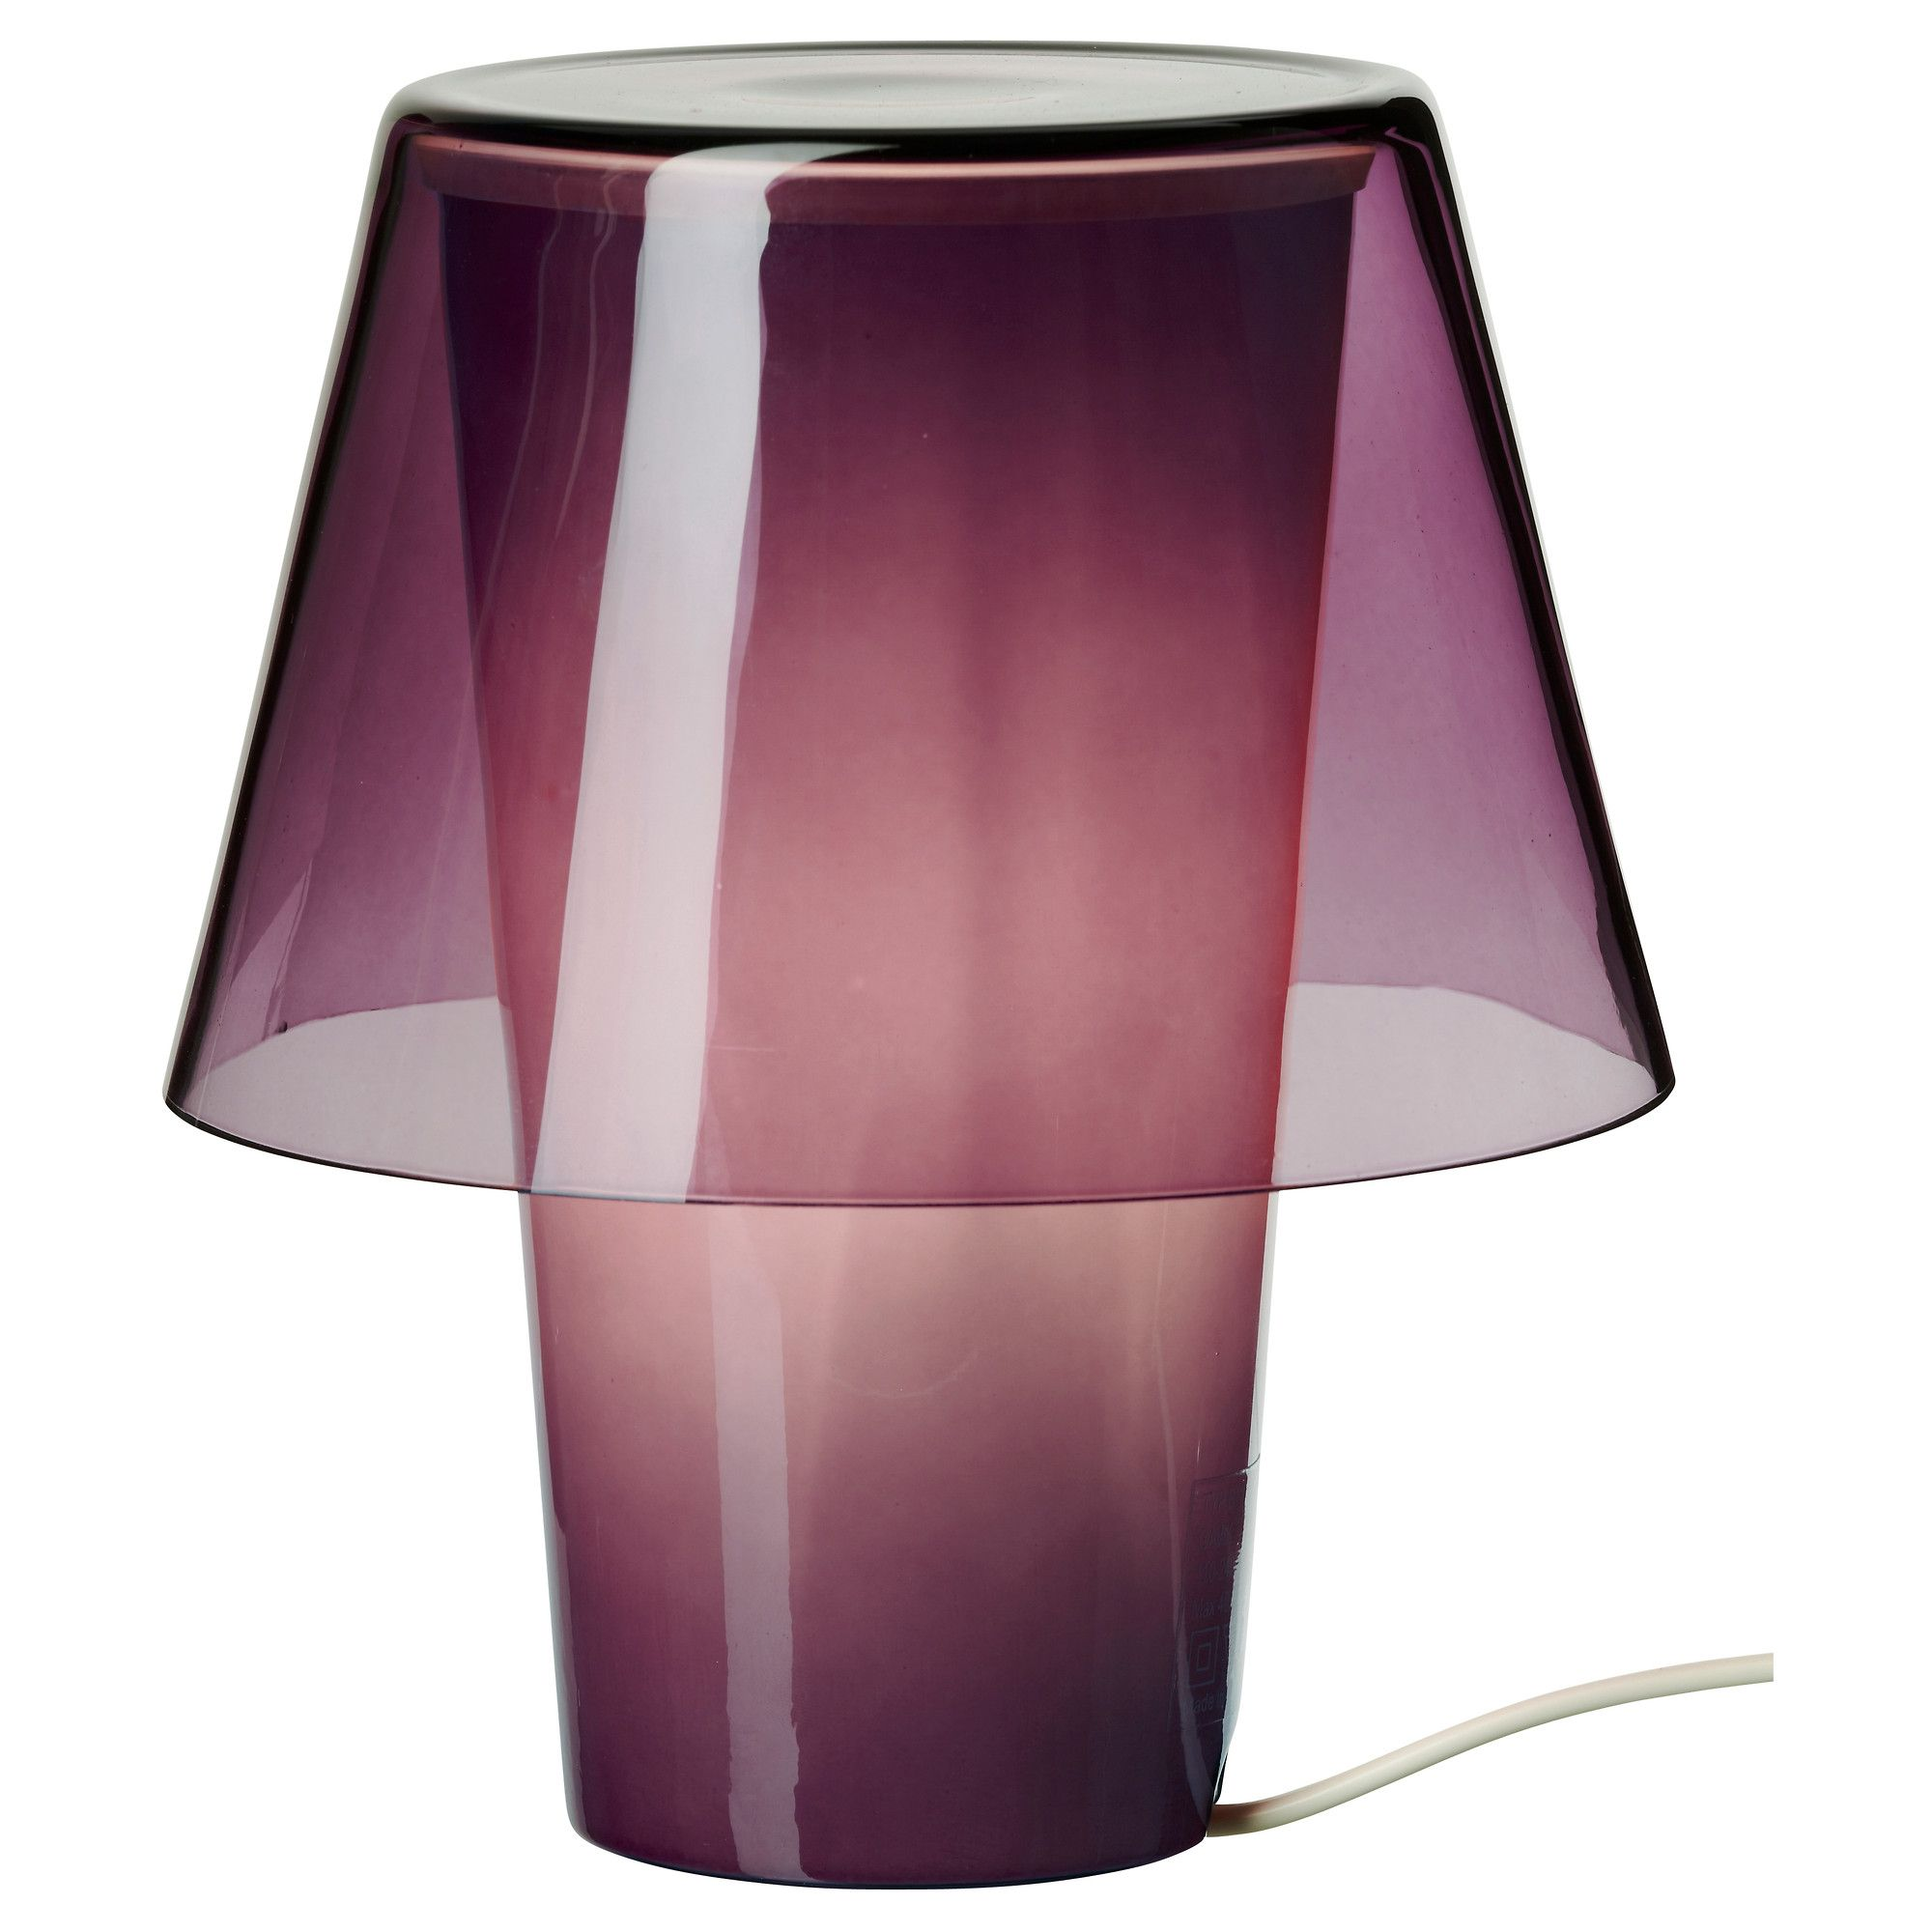 Ikea gavik table lamp in purplefrosted glass dream home ikea gavik table lamp in purplefrosted glass geotapseo Gallery